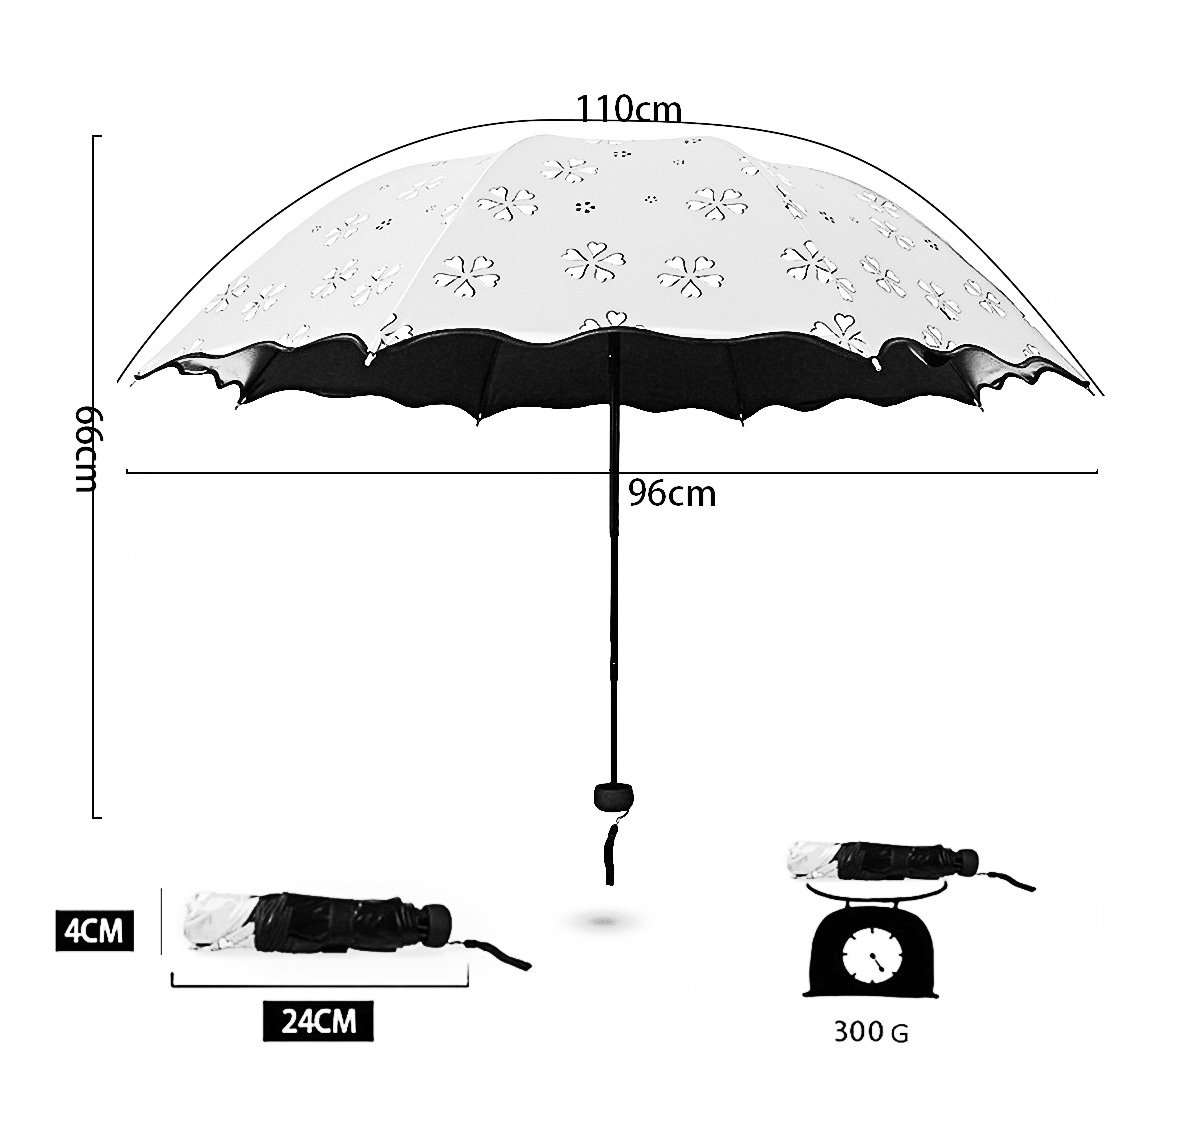 Travel Compact Color Change Umbrella Windproof,Folding Parasol Umbrella,Light Portable Sun Umbrellas with UV Protection,Outdoor Rain Umbrella Quick Dry Easy Carry for Women Girls Kids (Creamy White) by SUOWO (Image #3)